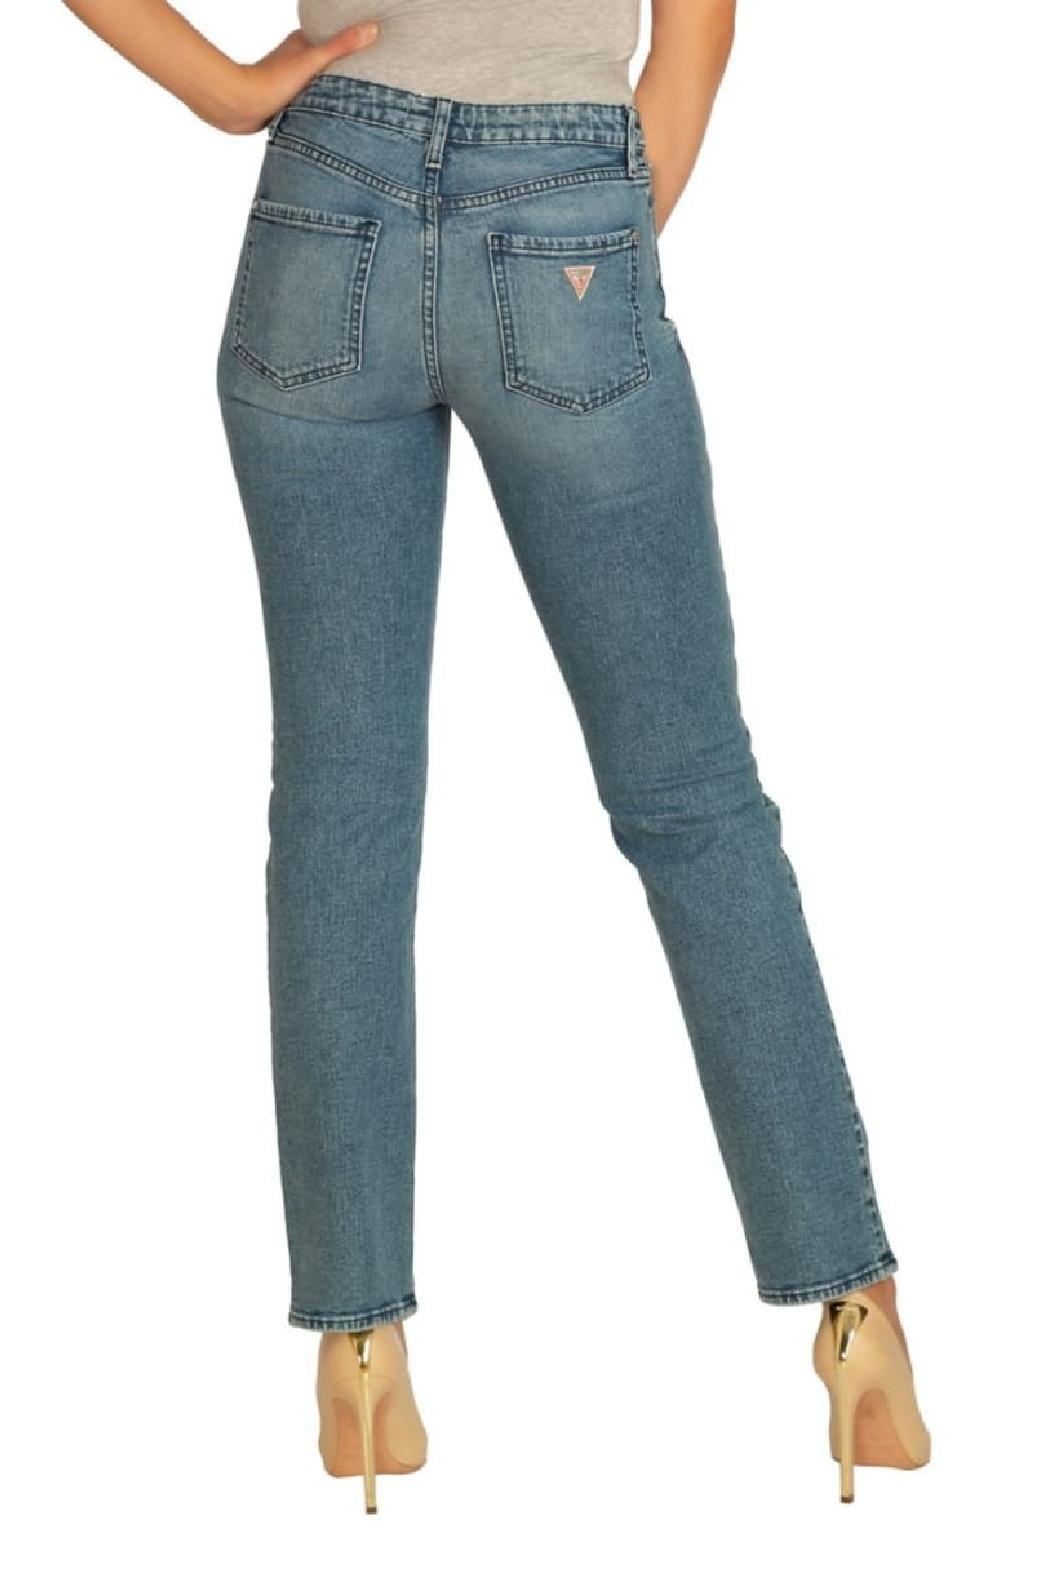 GUESS Jeans Guess 1981 Straing-Leg Jeans - Front Full Image